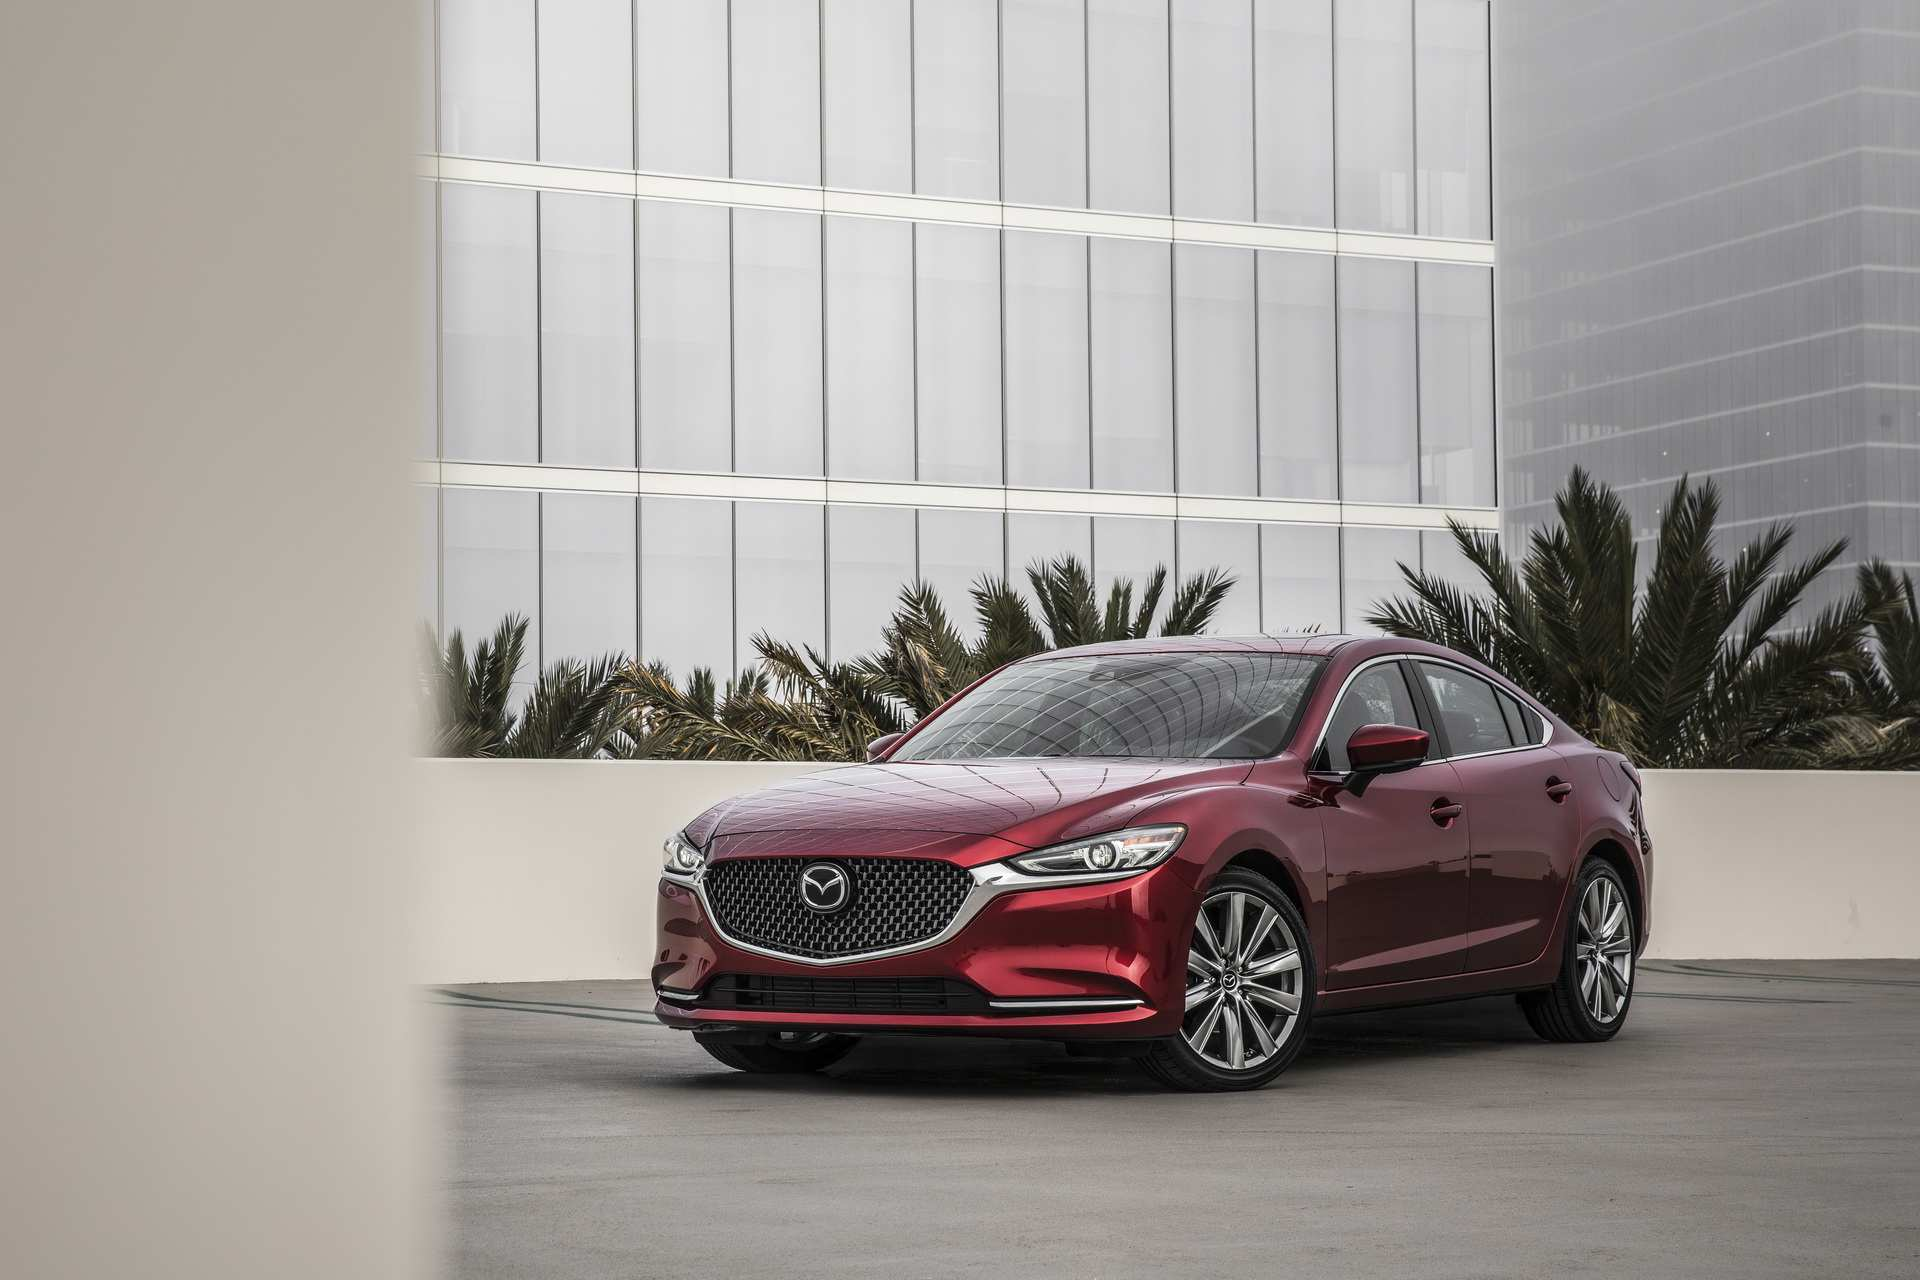 61 Concept of 2020 Mazda Vehicles Redesign for 2020 Mazda Vehicles